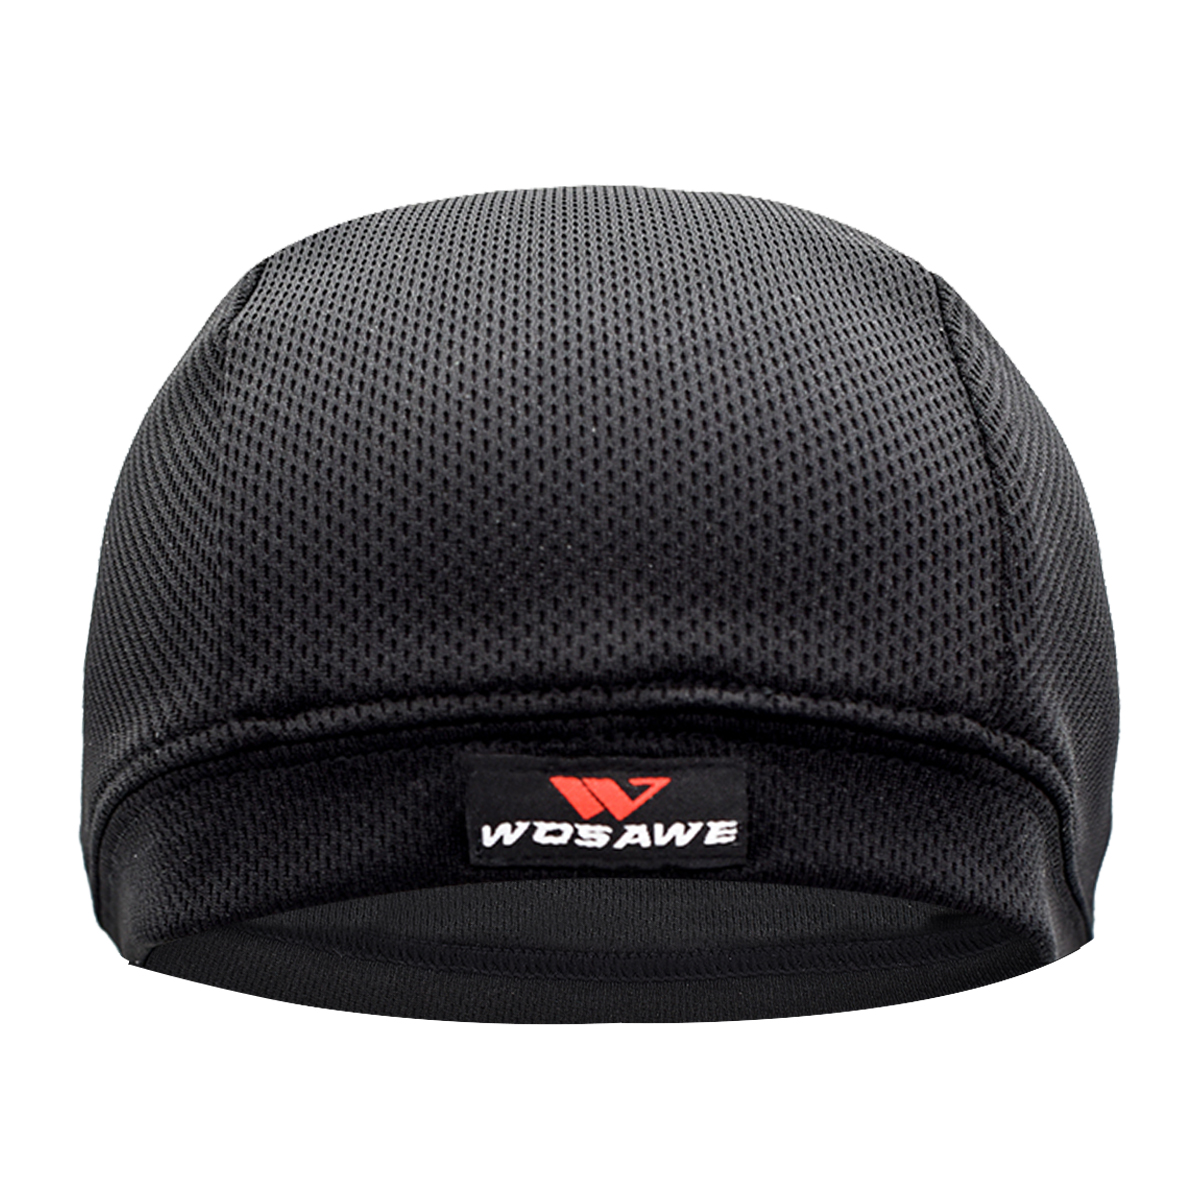 Motorcycle Helmet Lining-Caps Anti-Sweat-Hat Racing WOSAWE Ski Mesh Thin Breathable Mens